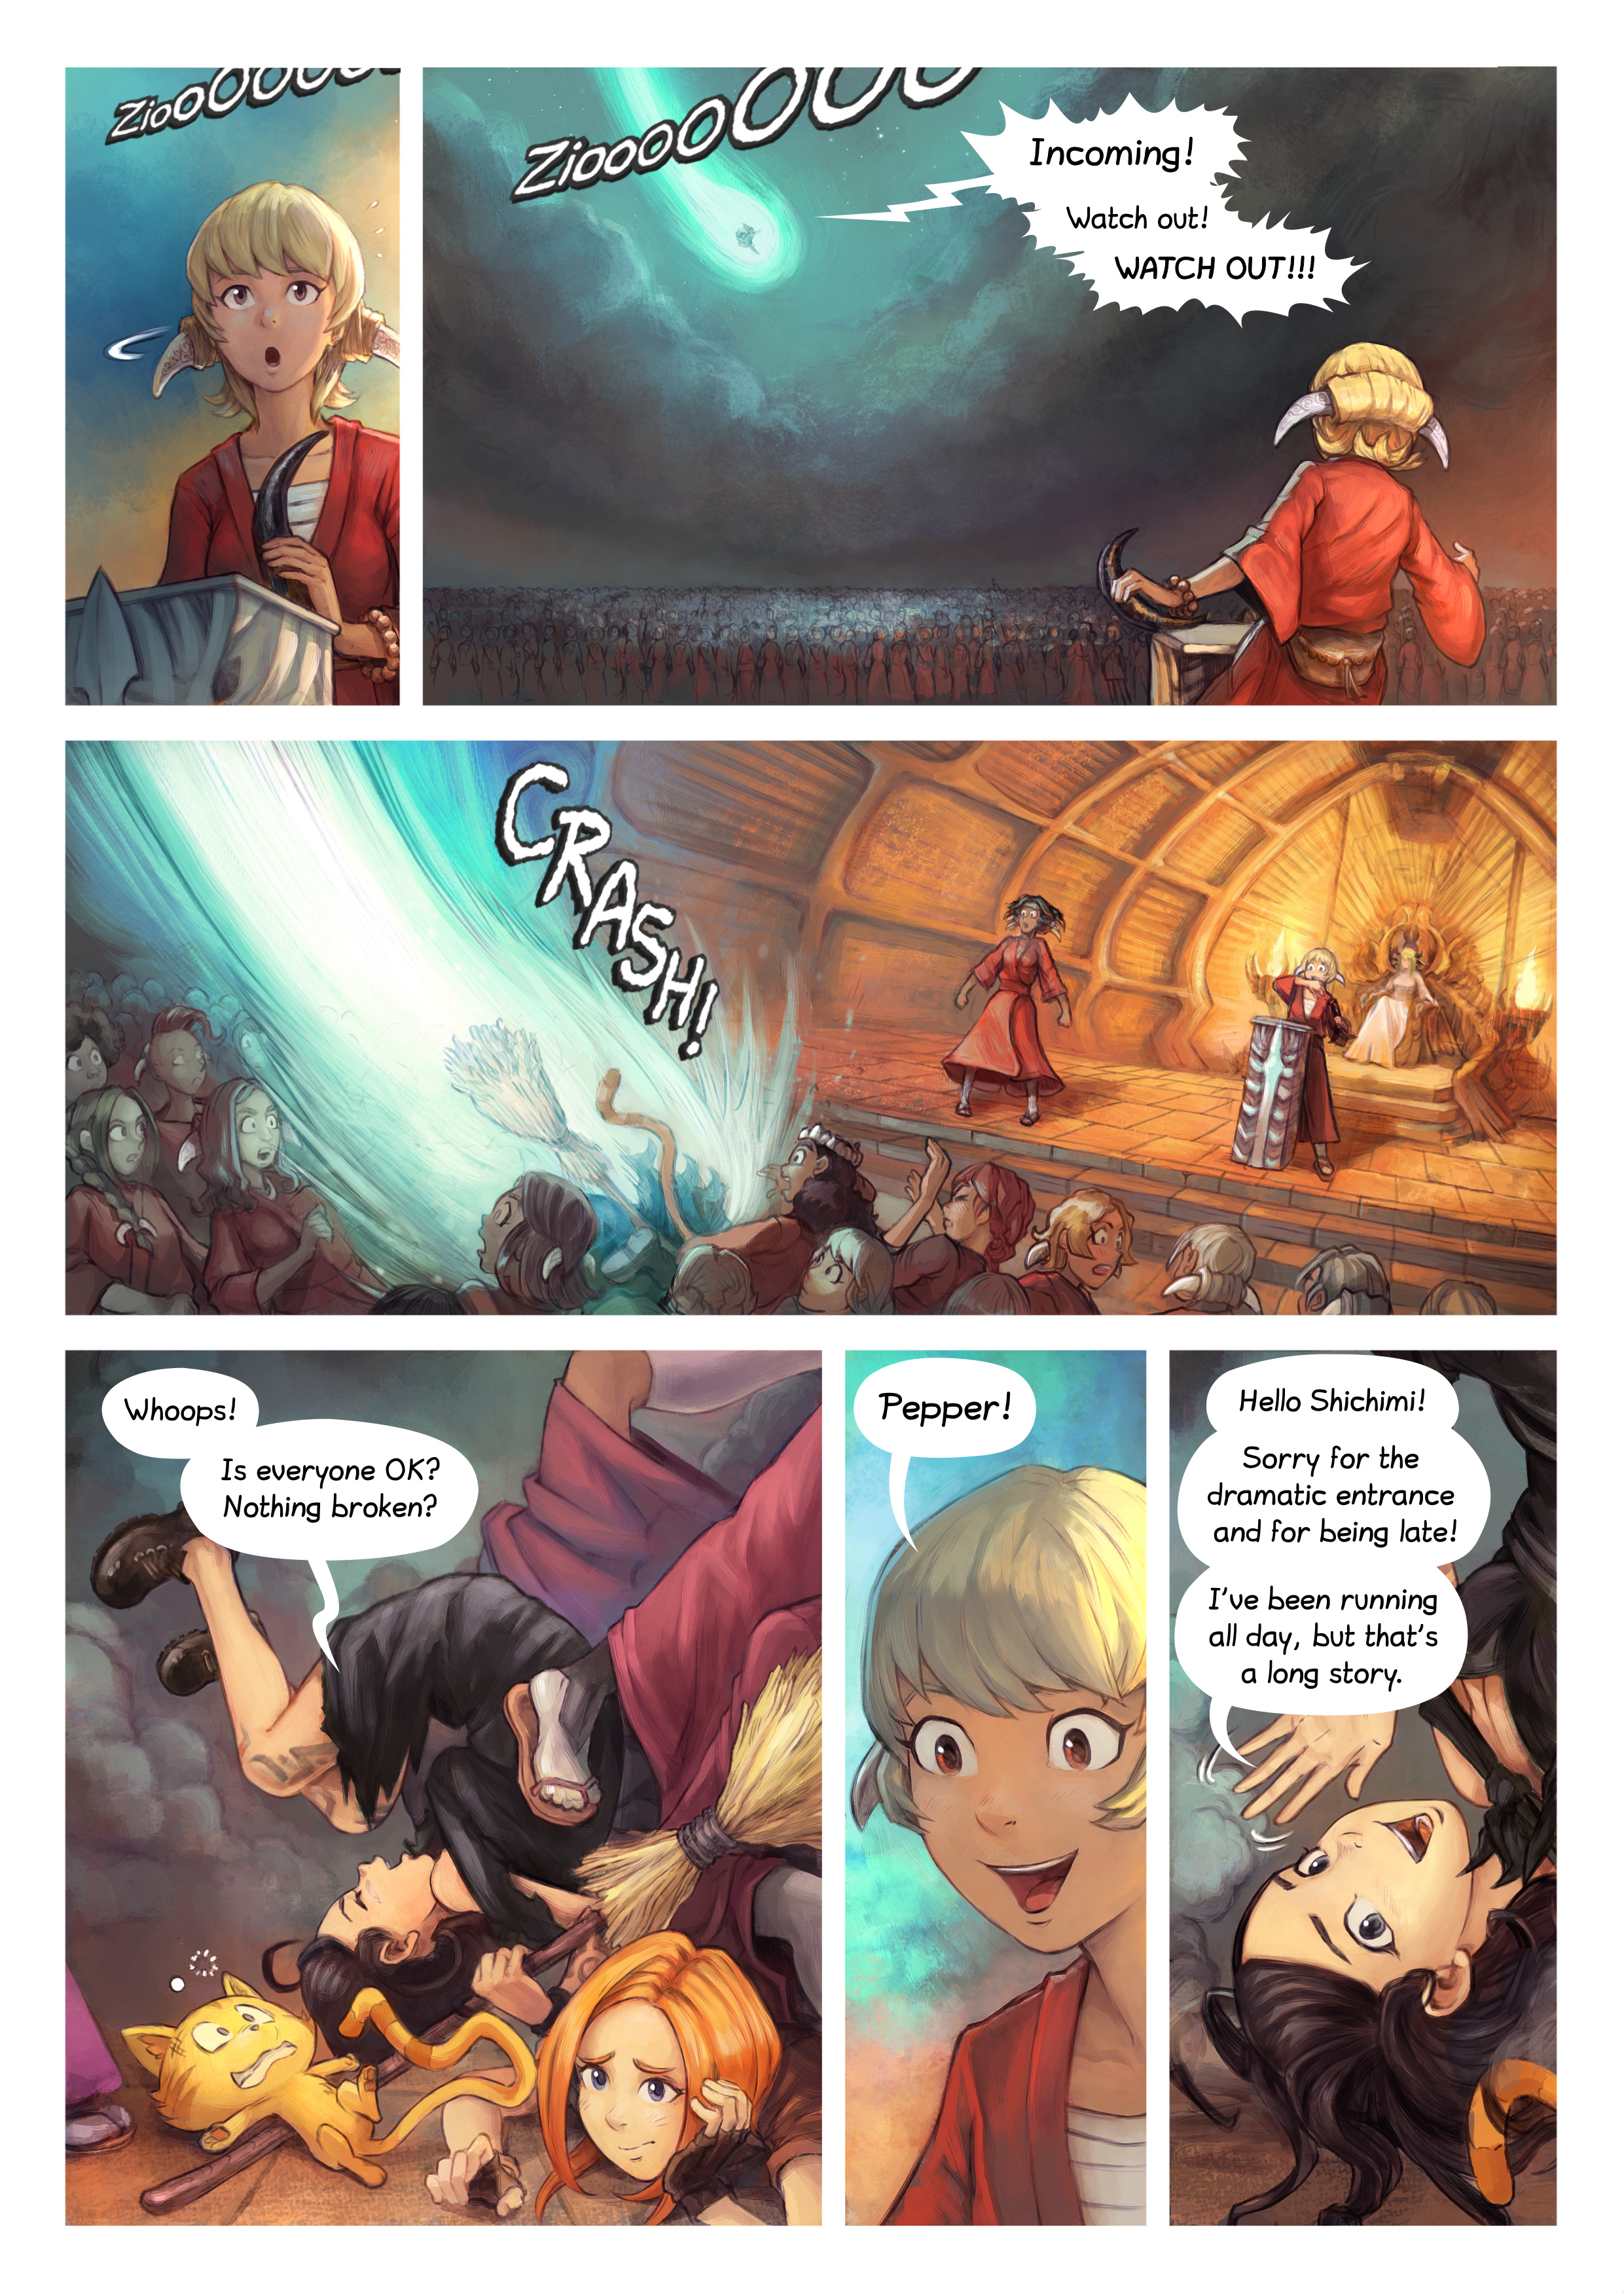 Episode 34: The Knighting of Shichimi, Page 2